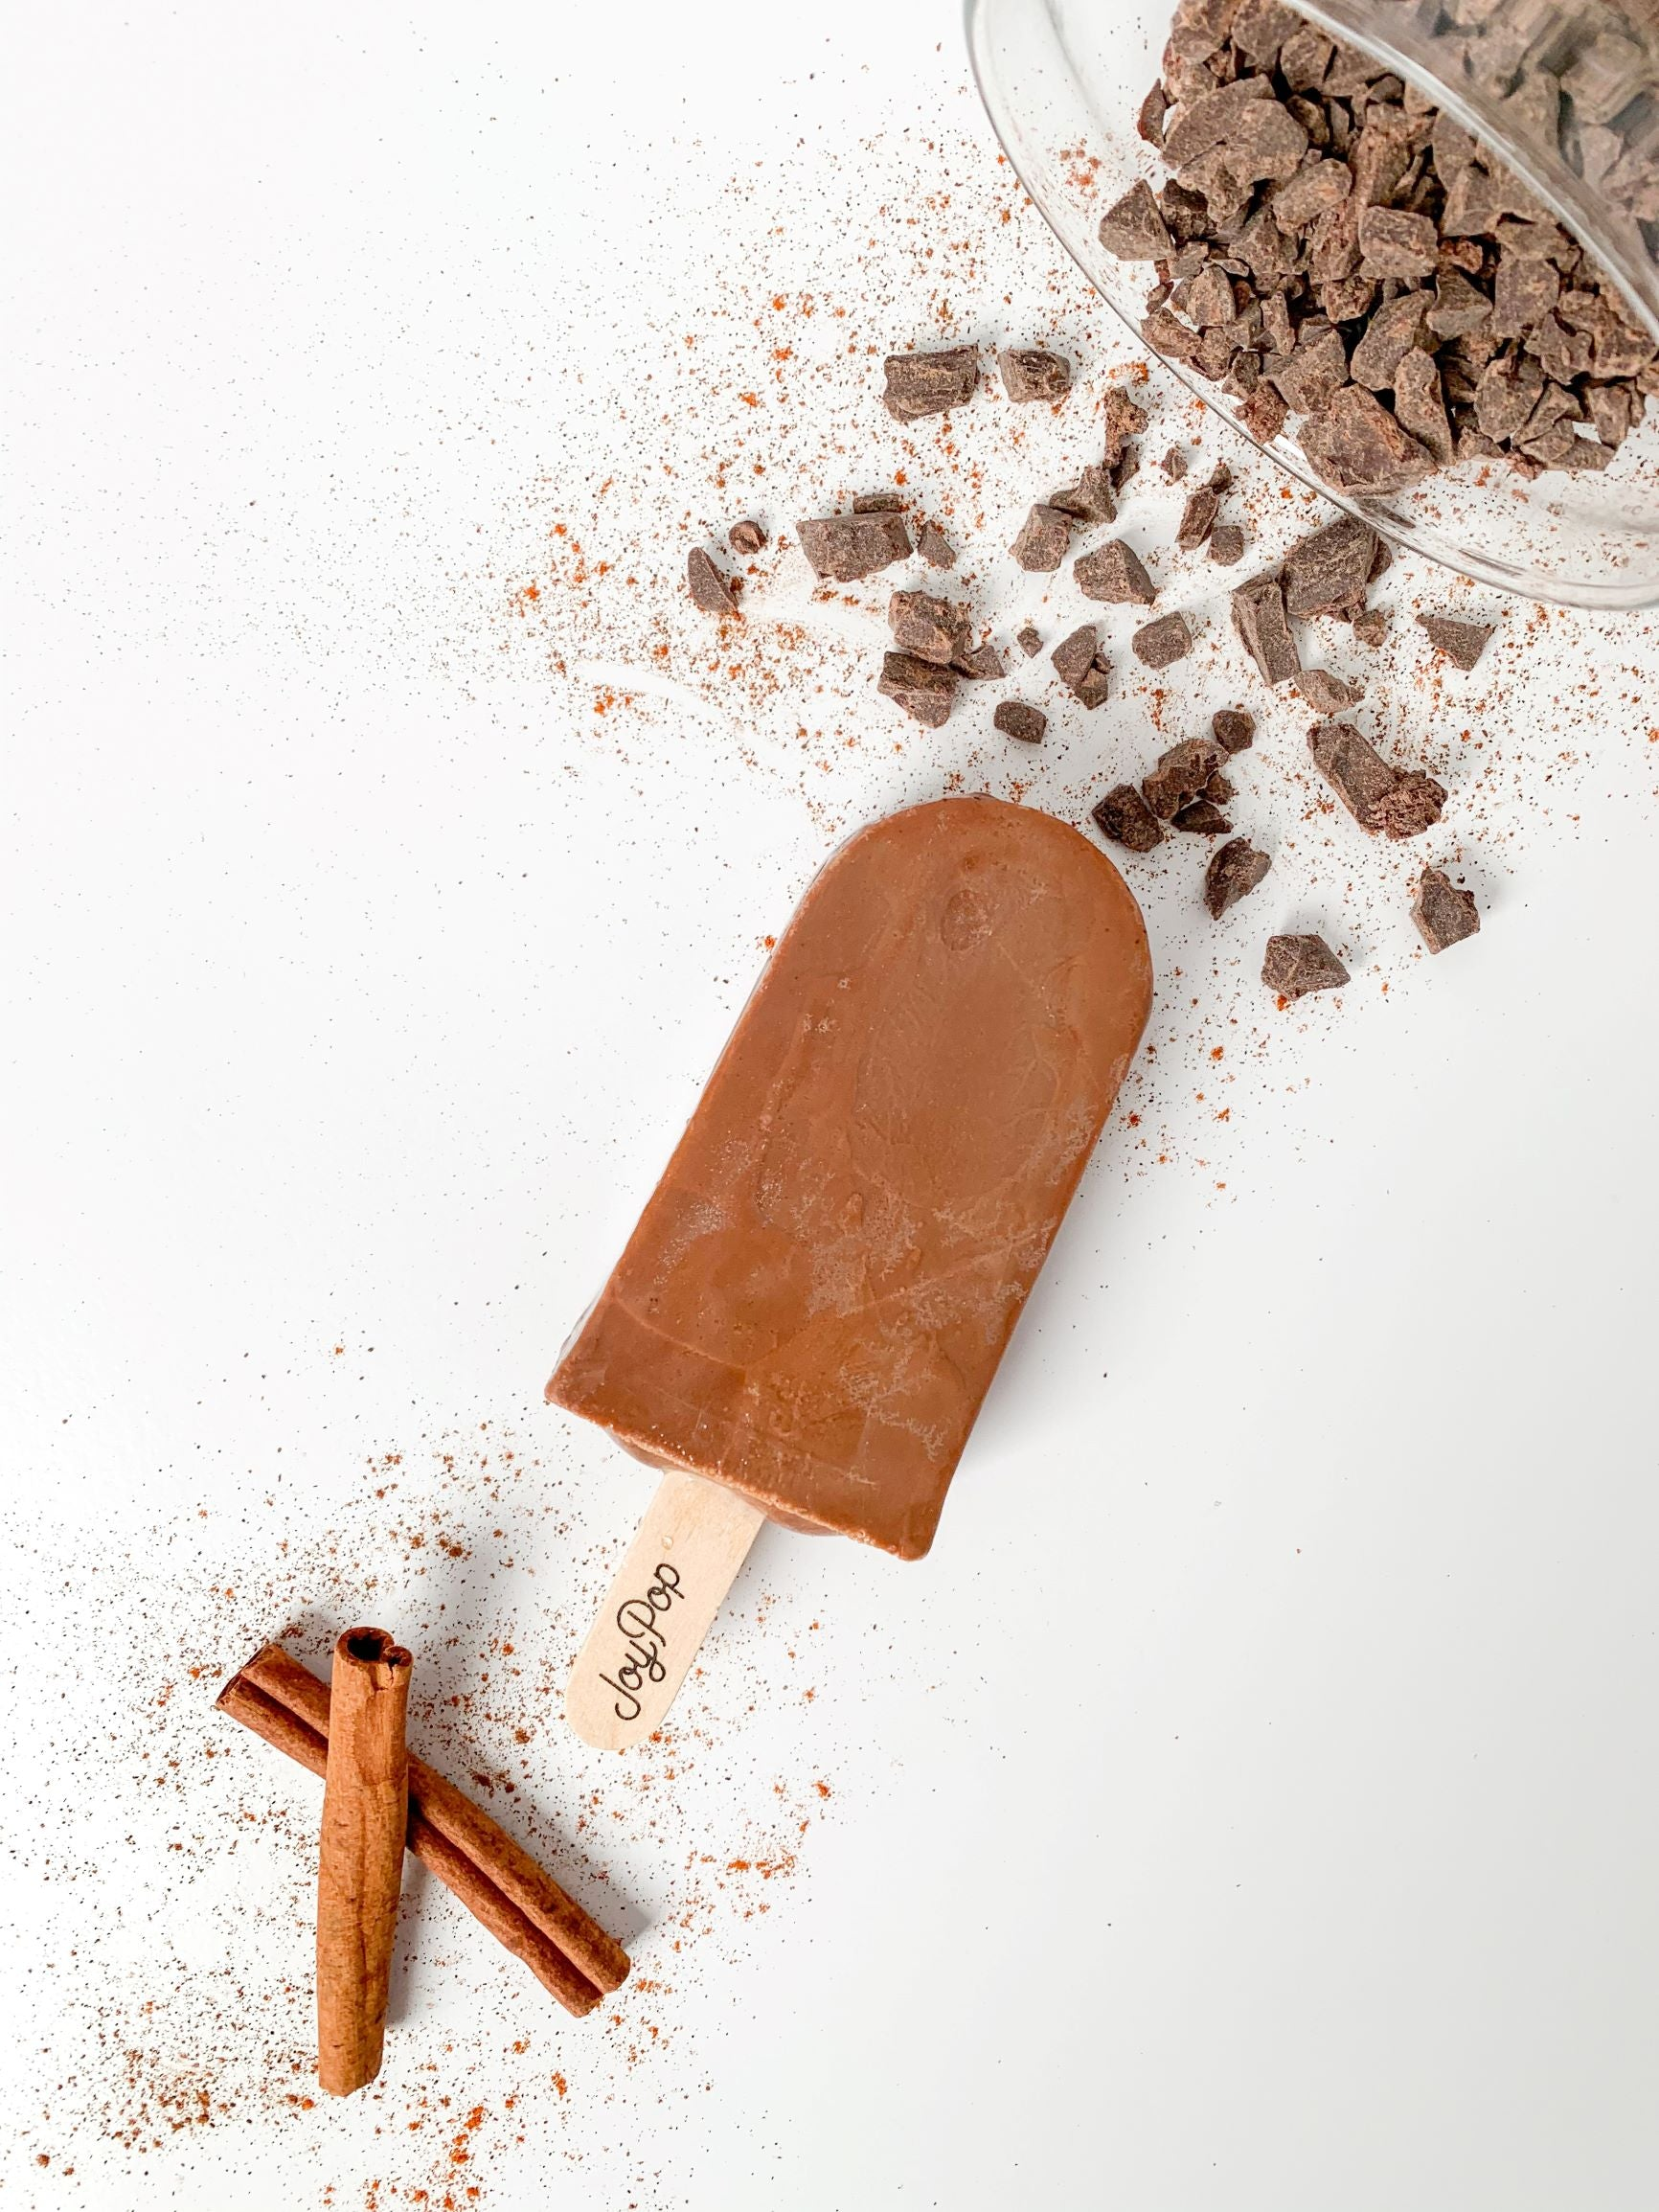 Mexican hot chocolate pop from The Joy Pop Co next to cinnamon sticks and cinnamon spice and a glass jar of chocolate chunks that is spilling out on a white background